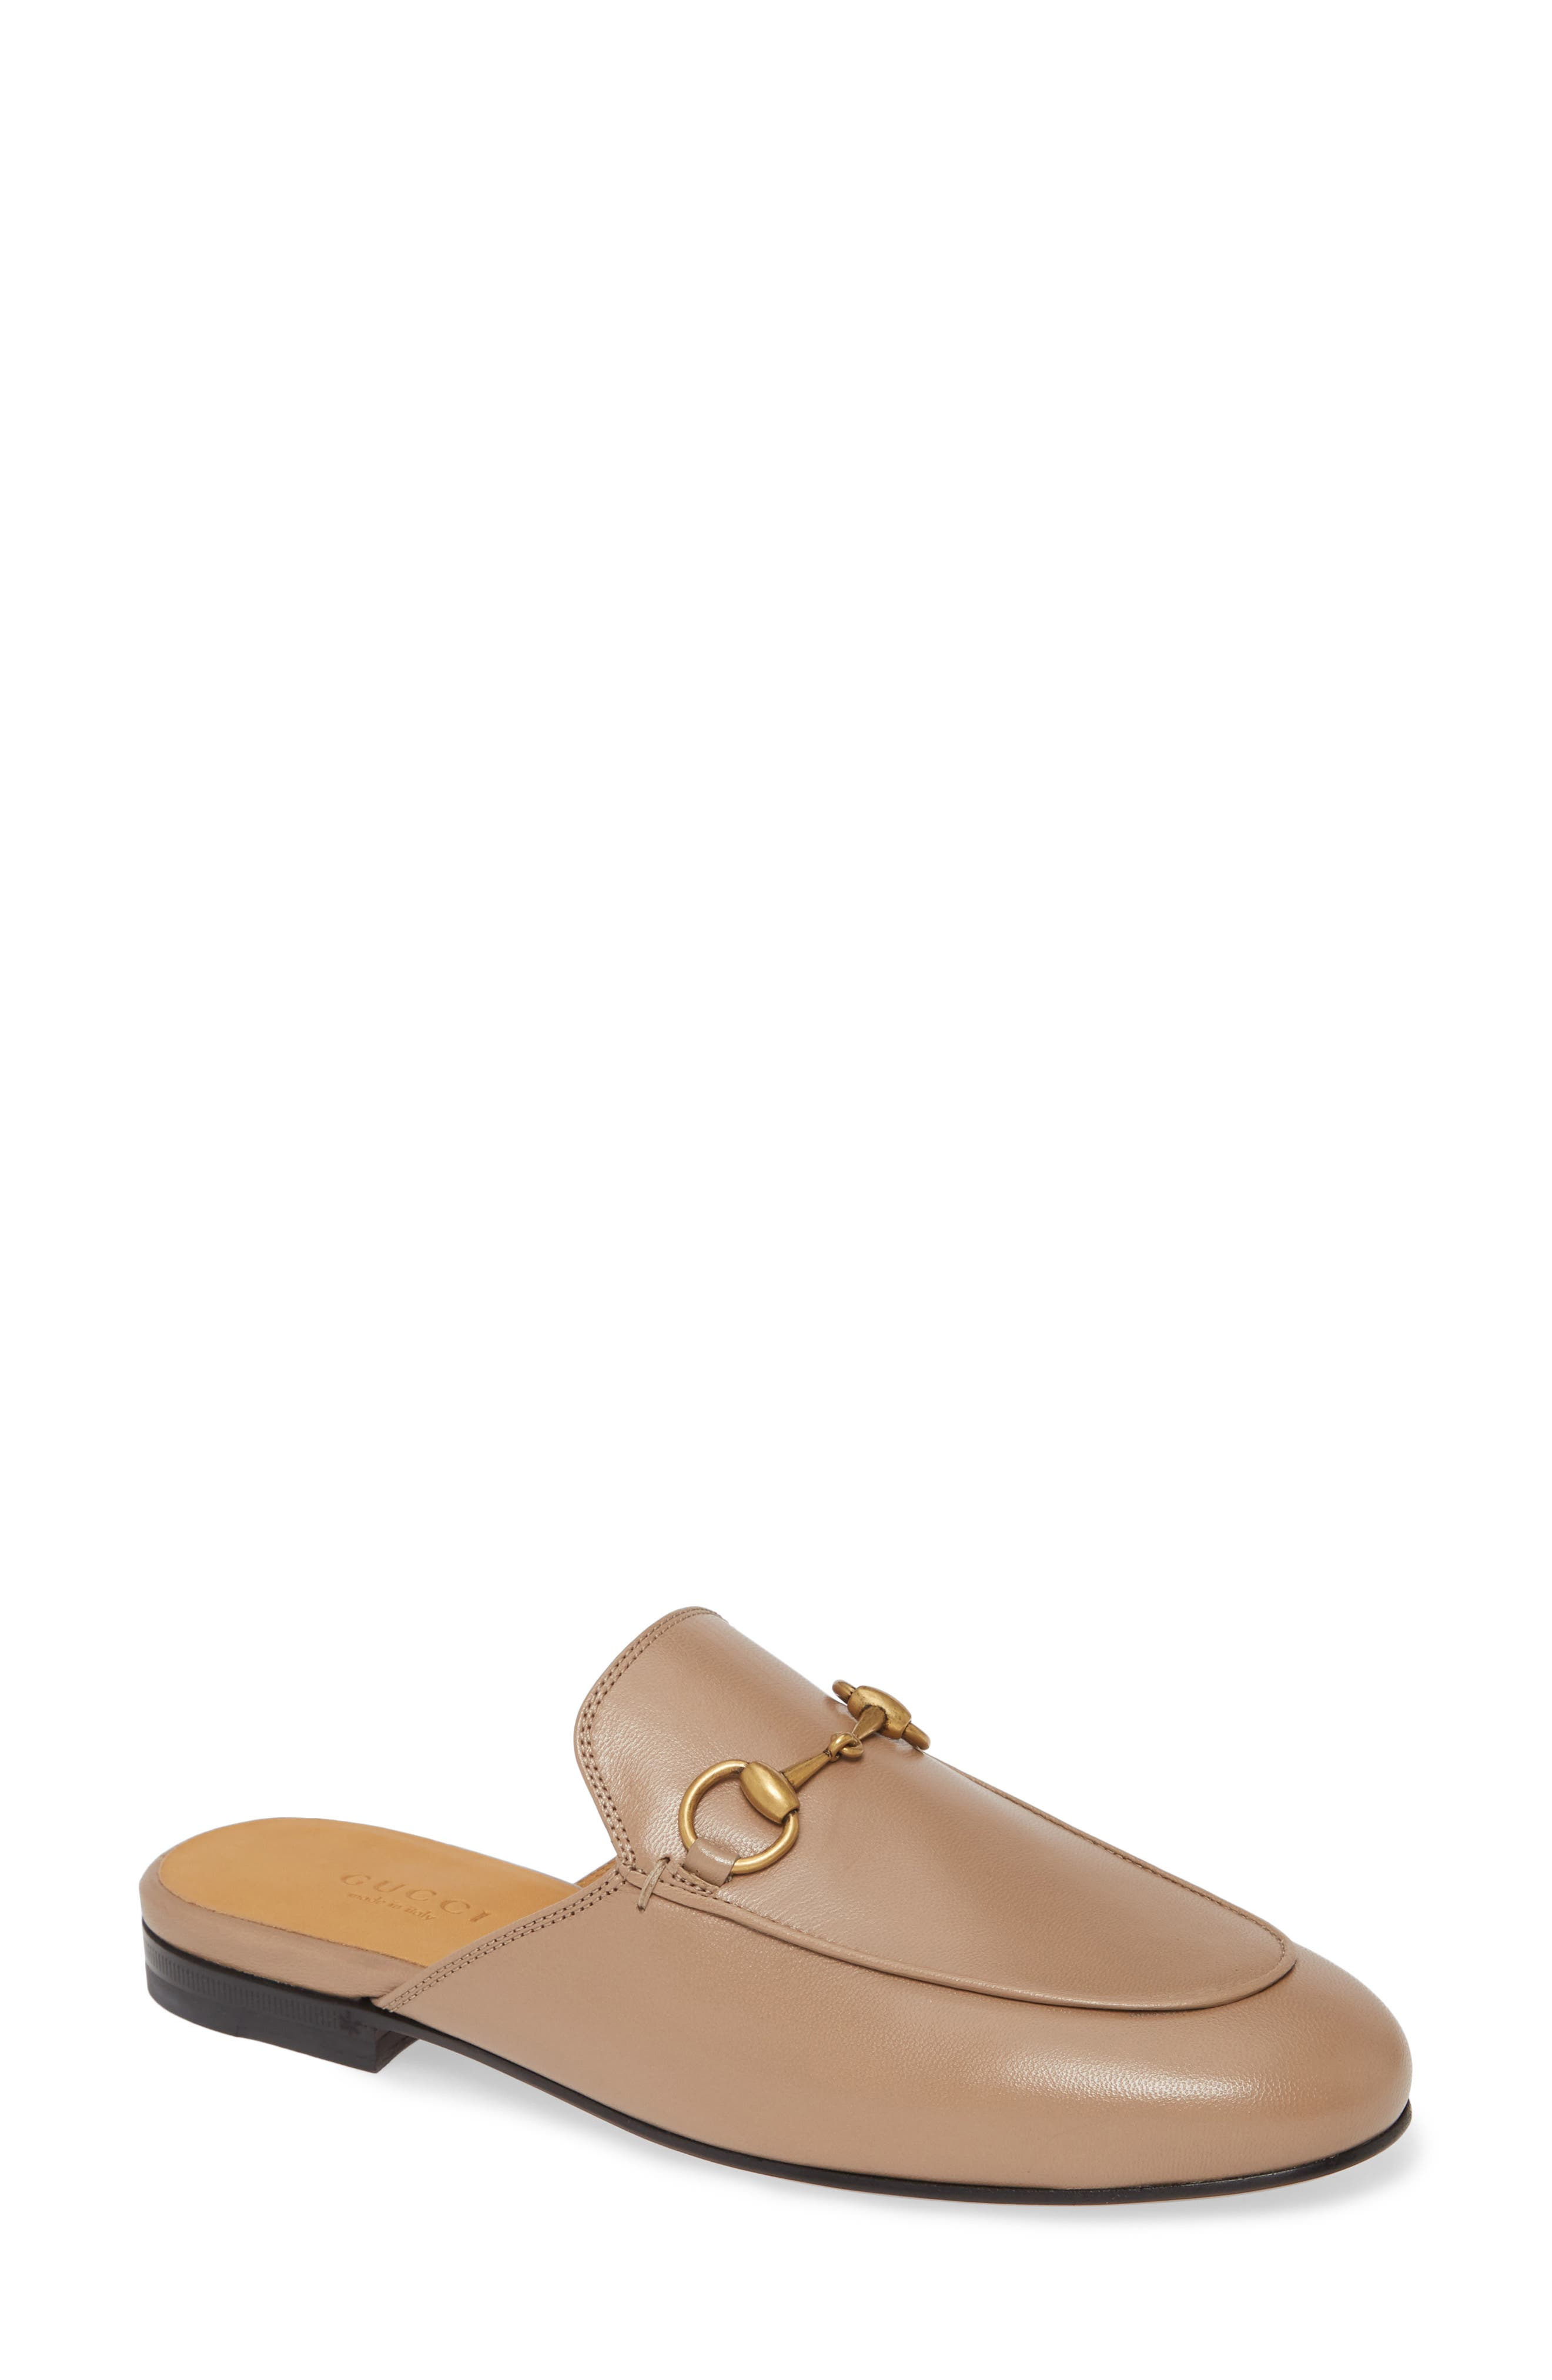 Gucci Princetown Loafer Mule (Women